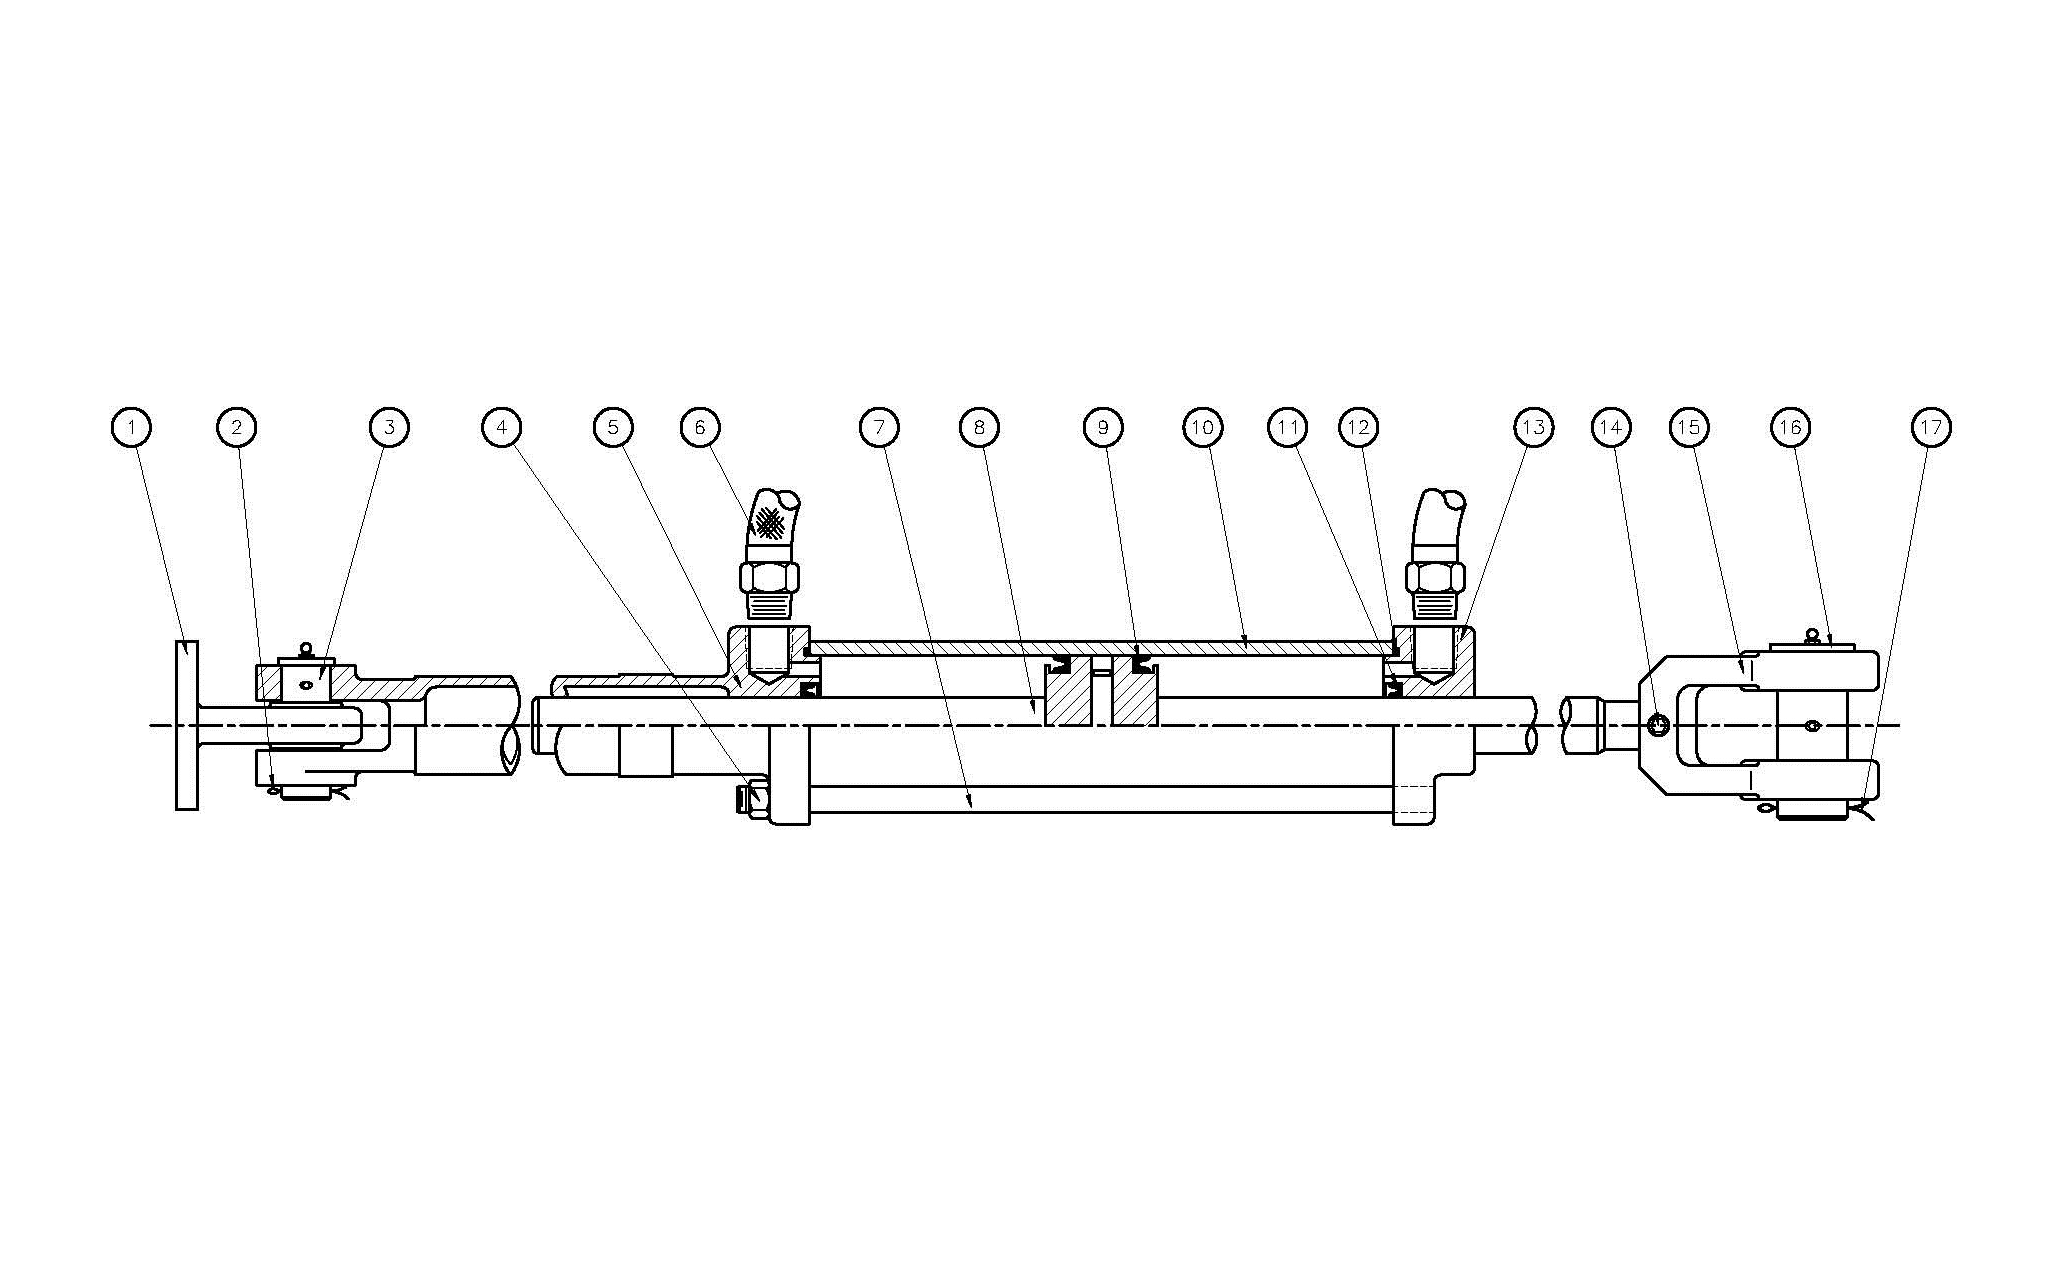 Type N65 N85 N175 N250 N350 N400 Hydraulic Cylinder Assembly Diagram